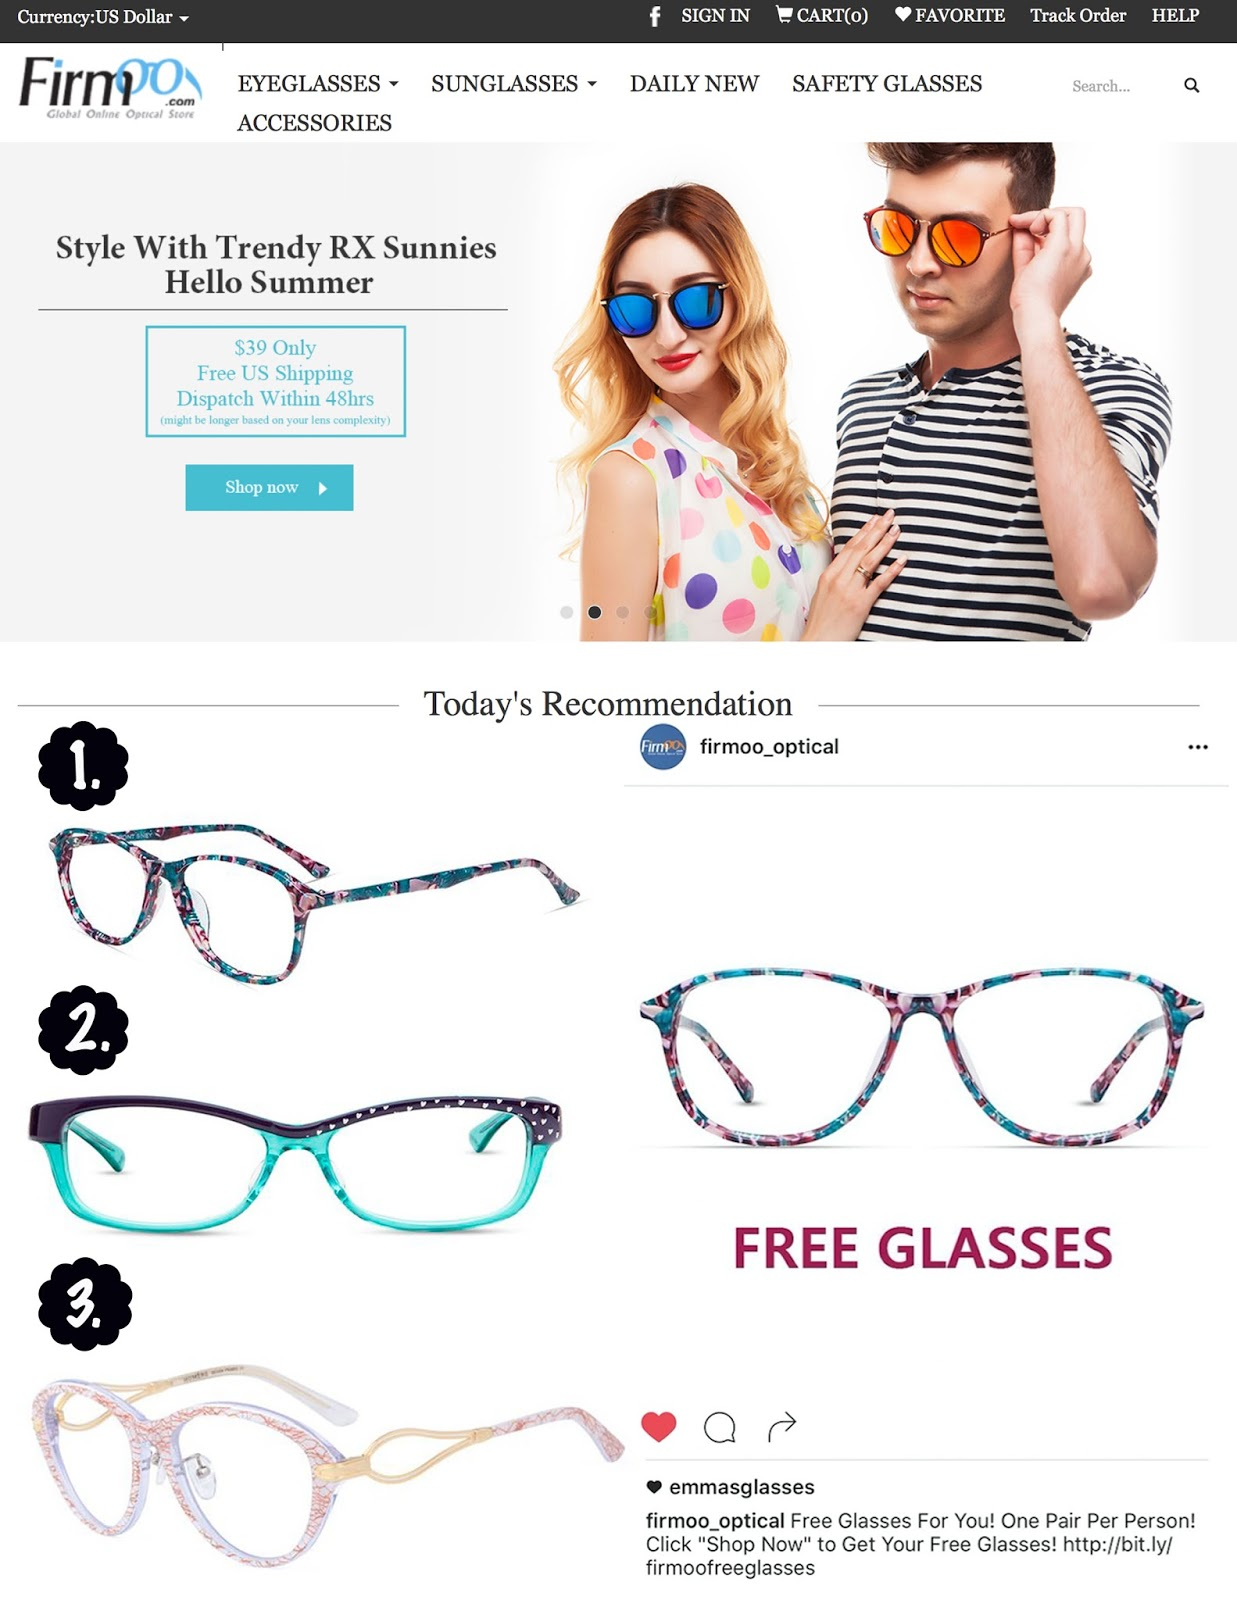 89d48d2eff behind the leopard glasses  My Top 5 Places to Buy Eyeglasses Online!